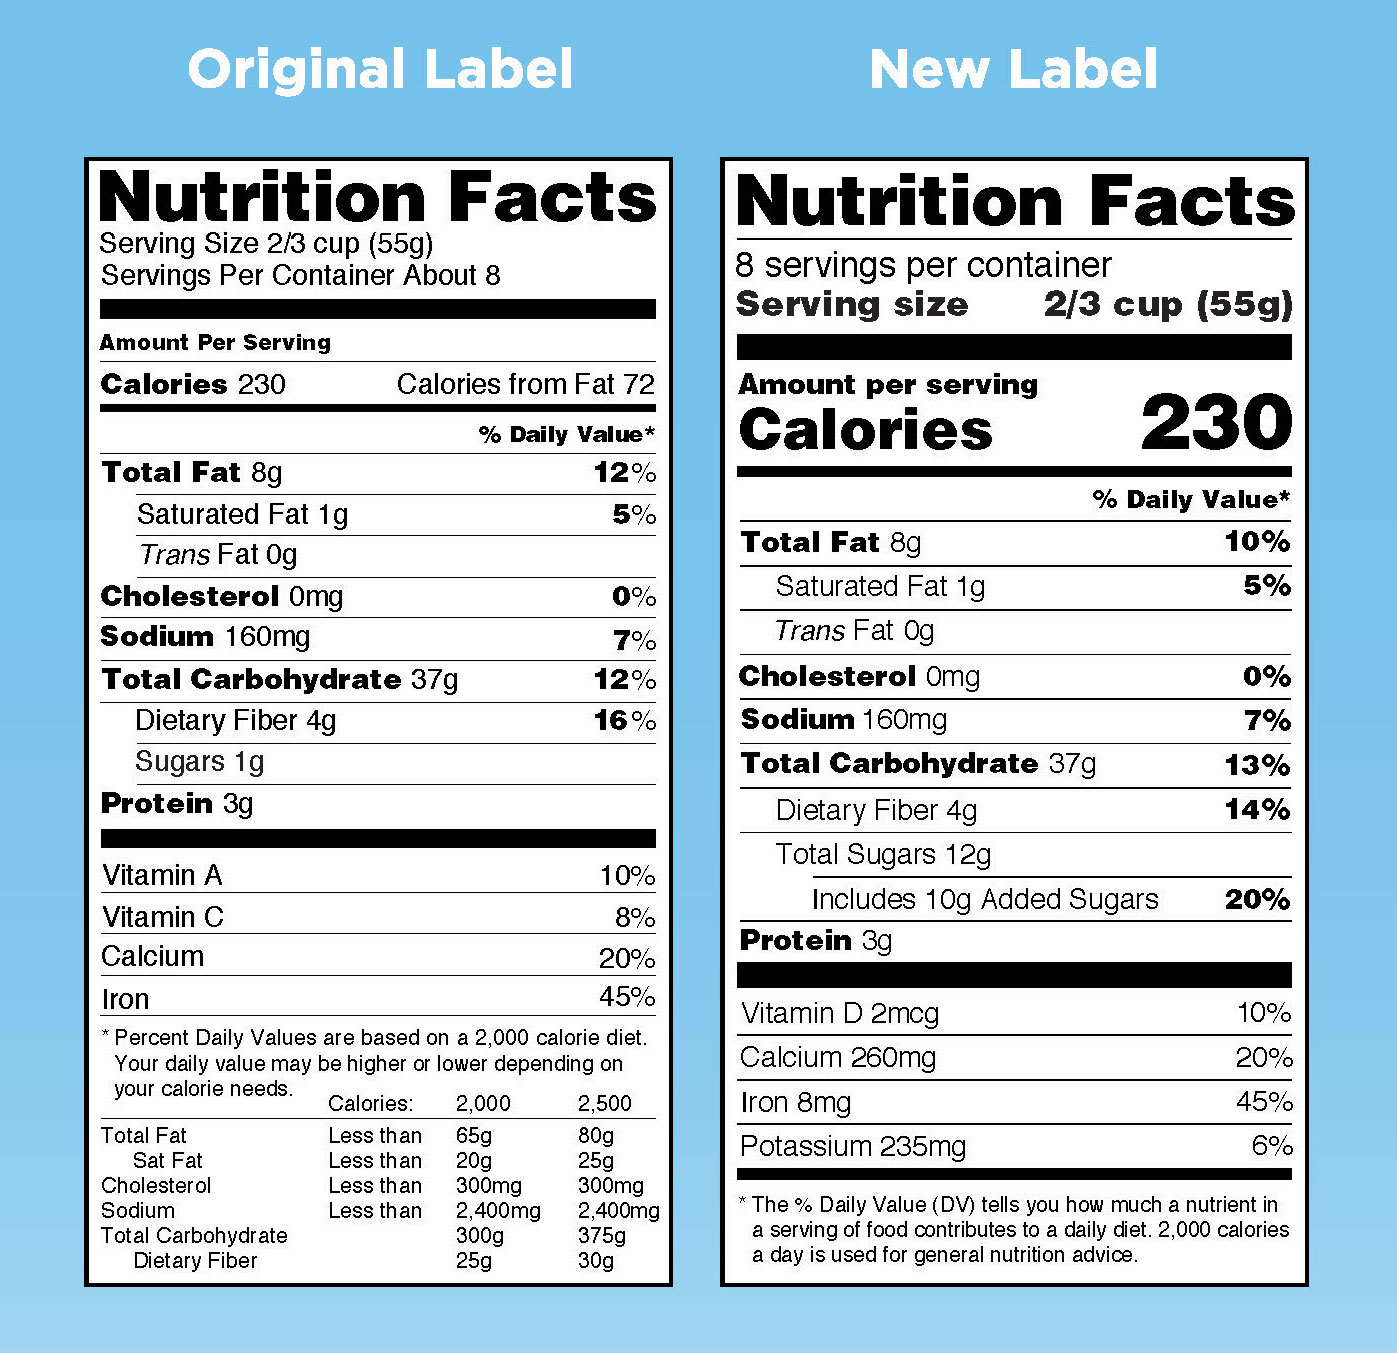 Nutrition Facts Label Comparison